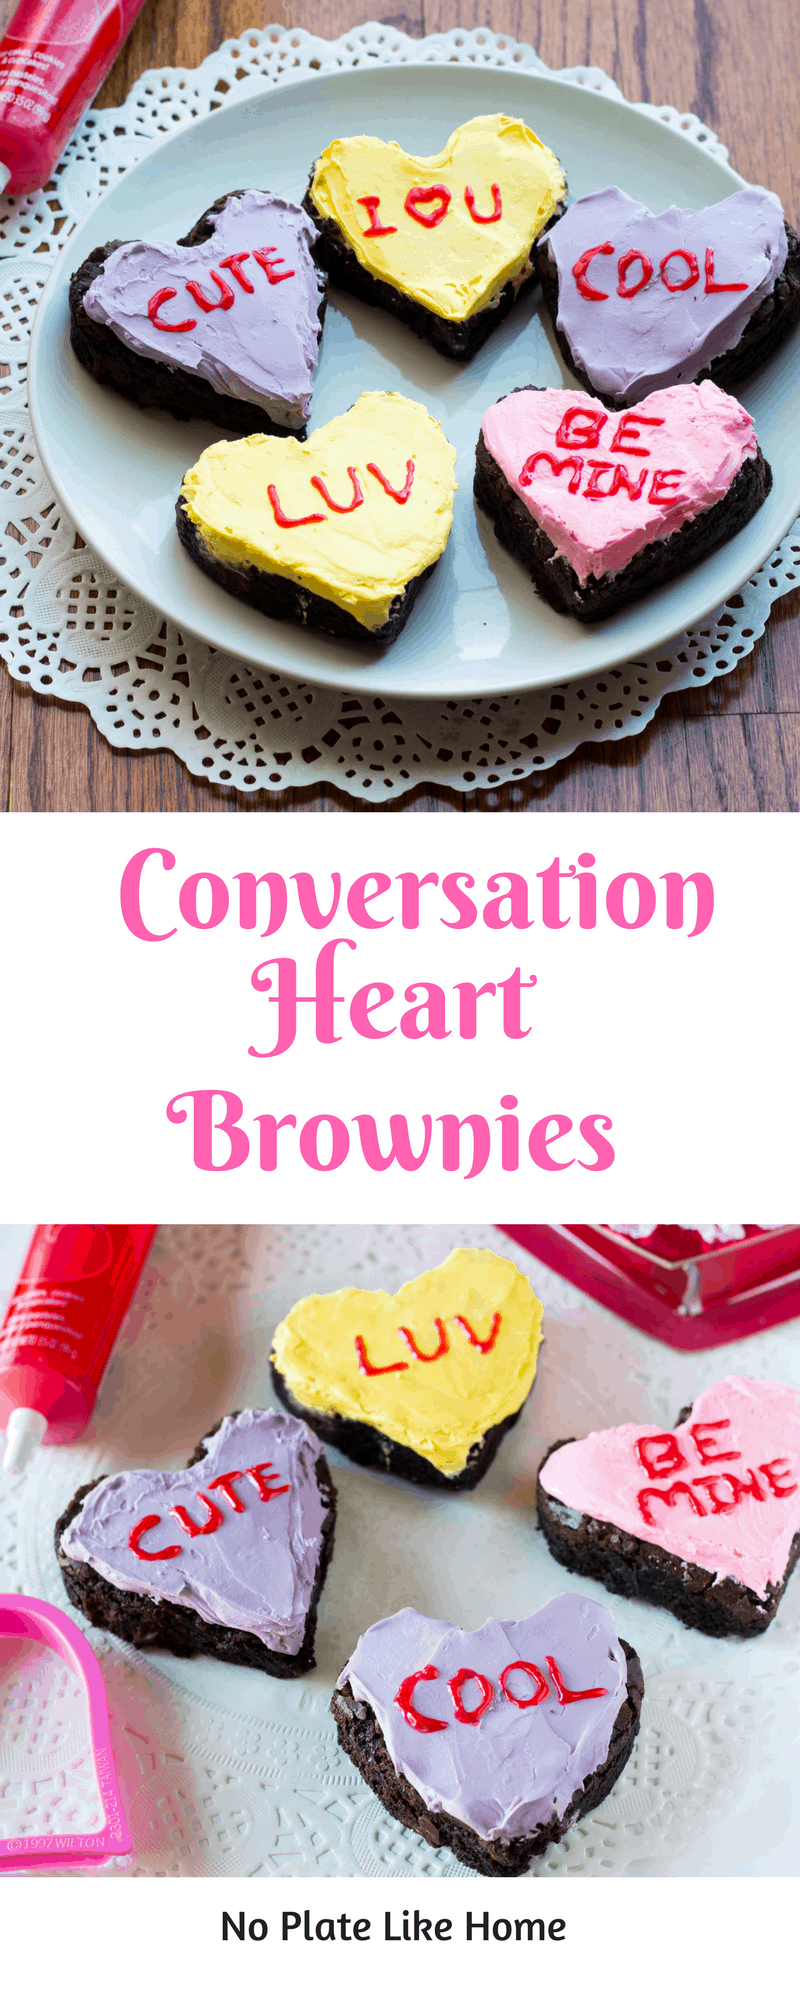 "Conversation Heart Chocolate Brownies are a cute way to say ""I love you"" to your sweetheart on Valentines Day using a homemade brownie and icing recipe."